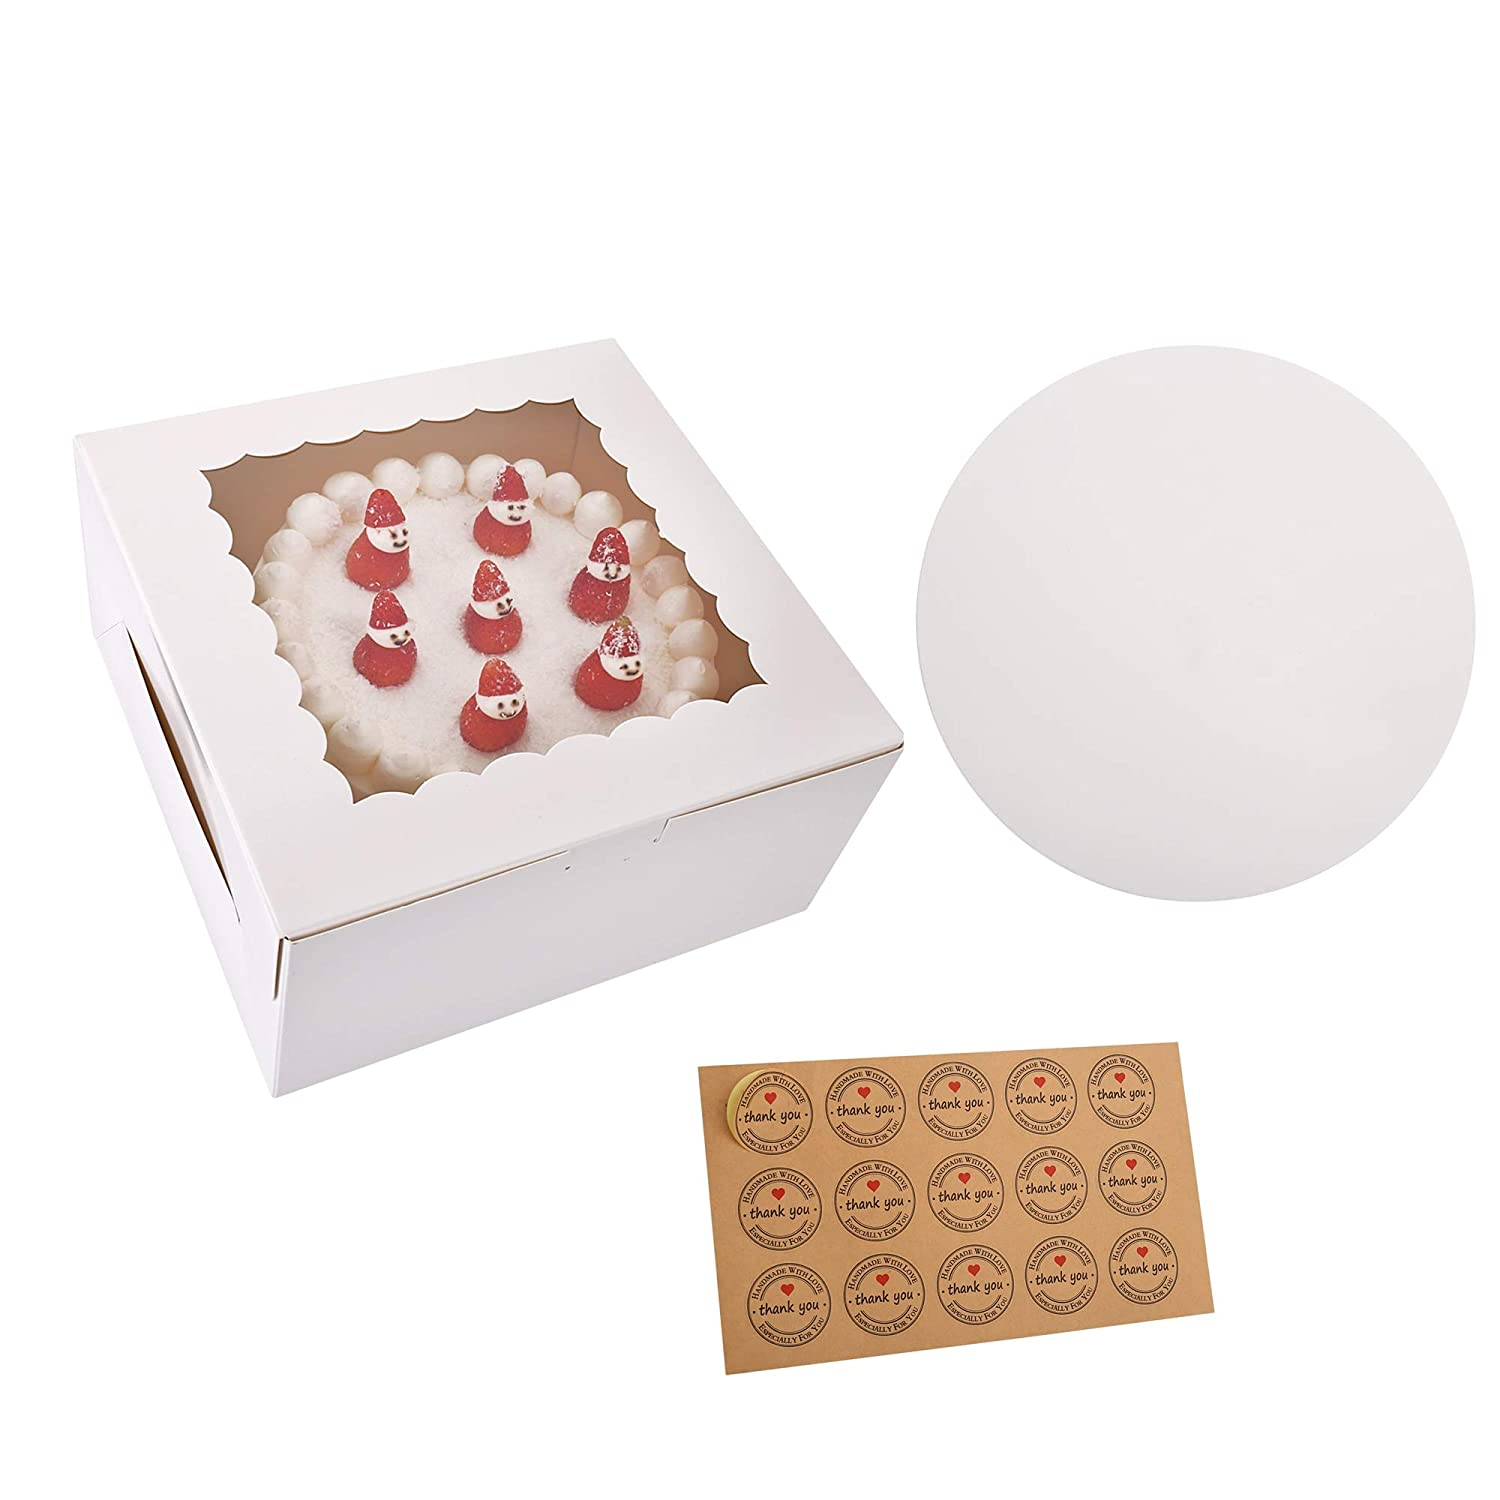 15-Set Cake Boxes with Cake Boards, 10'' x 10'' x 5'', Cake Containers with Window (White)